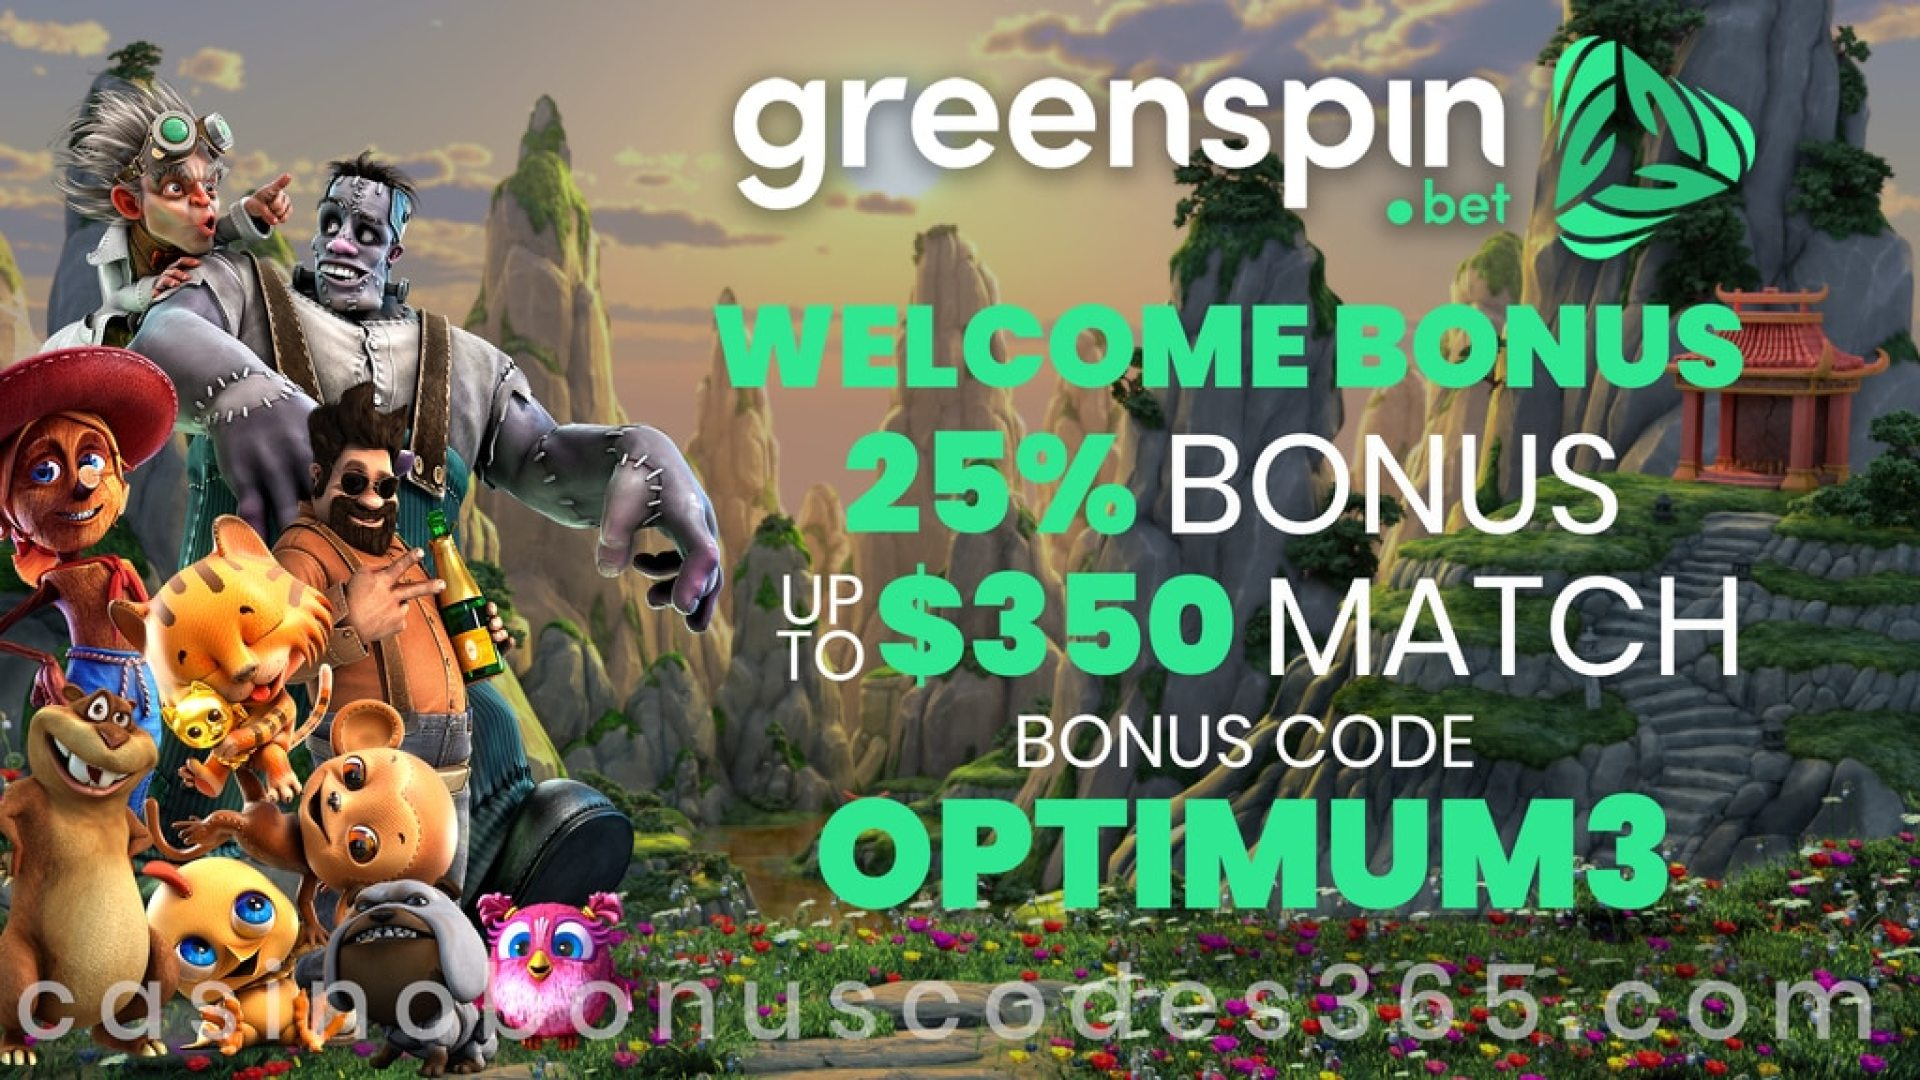 GreenSpin 25% Match up to $350 Bonus Welcome Promotion